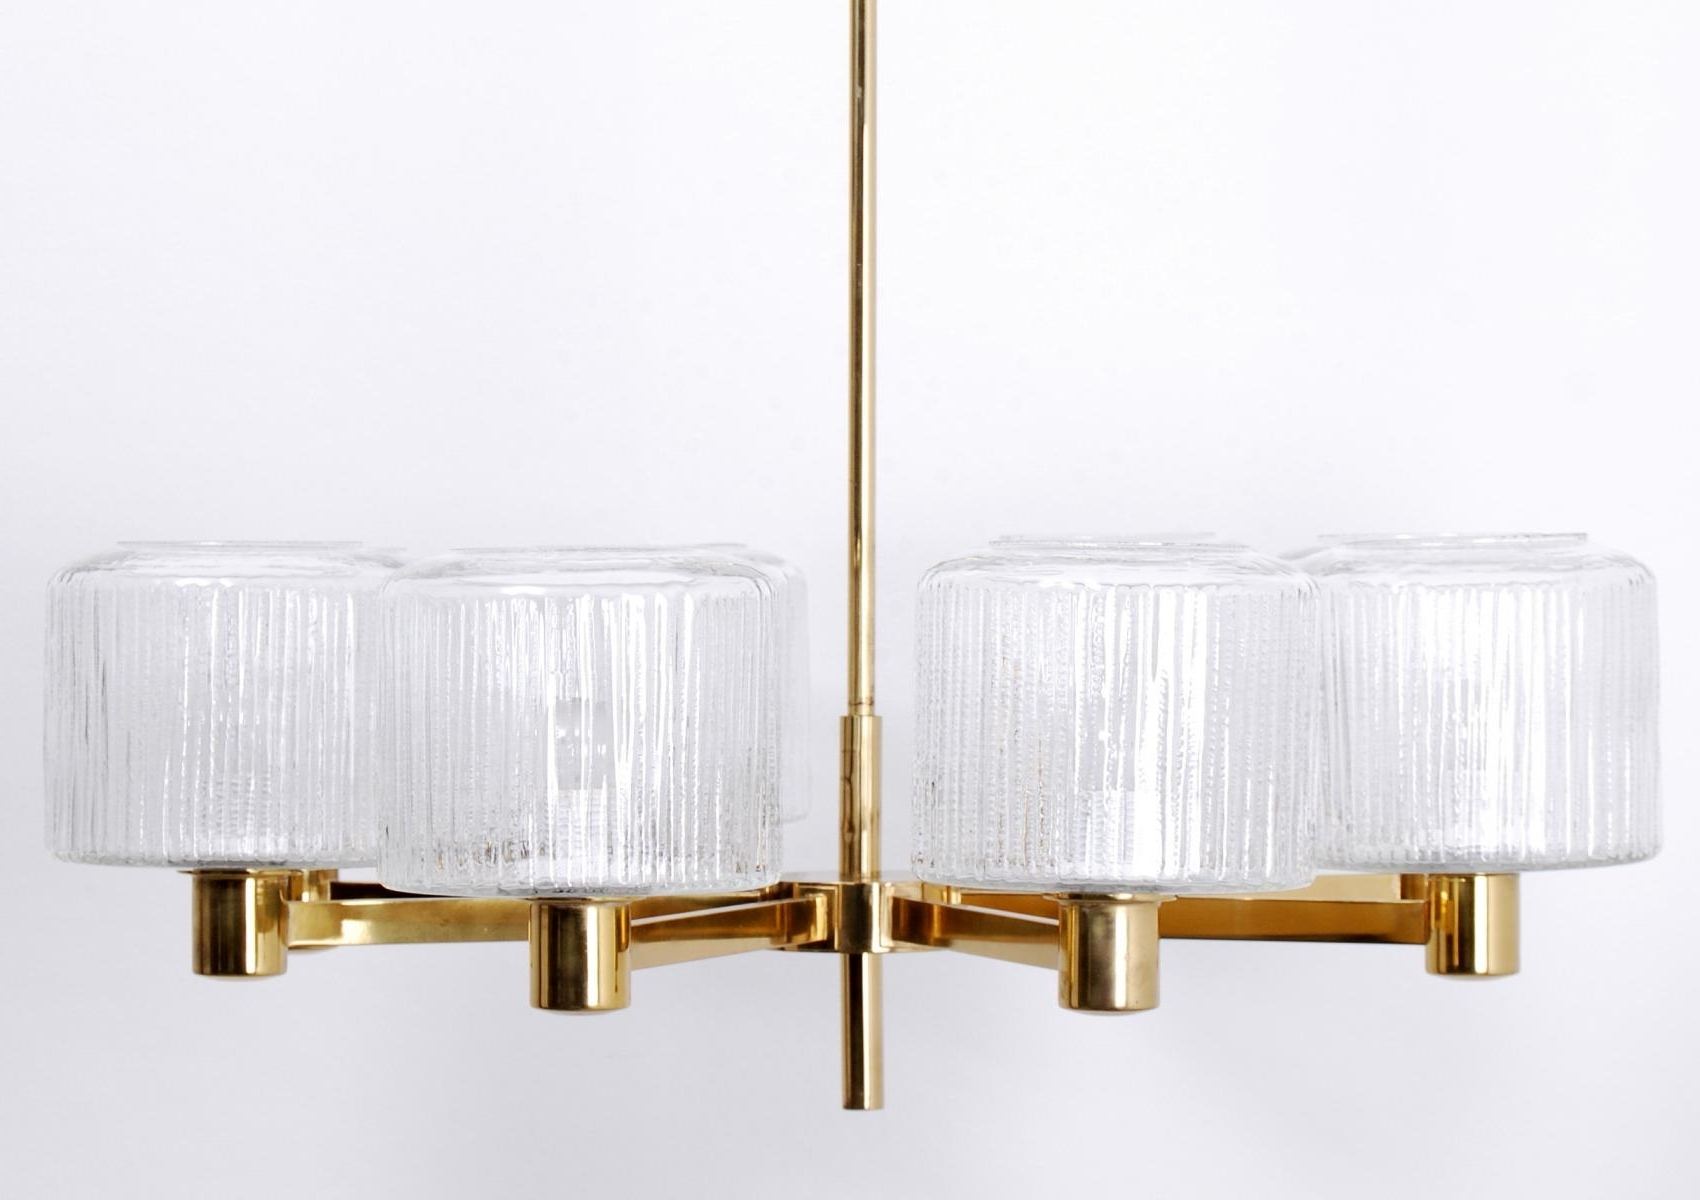 Most Popular Vintage Large Scandinavian Chandelier In Brass For Sale At Pamono With Regard To Scandinavian Chandeliers (View 6 of 15)